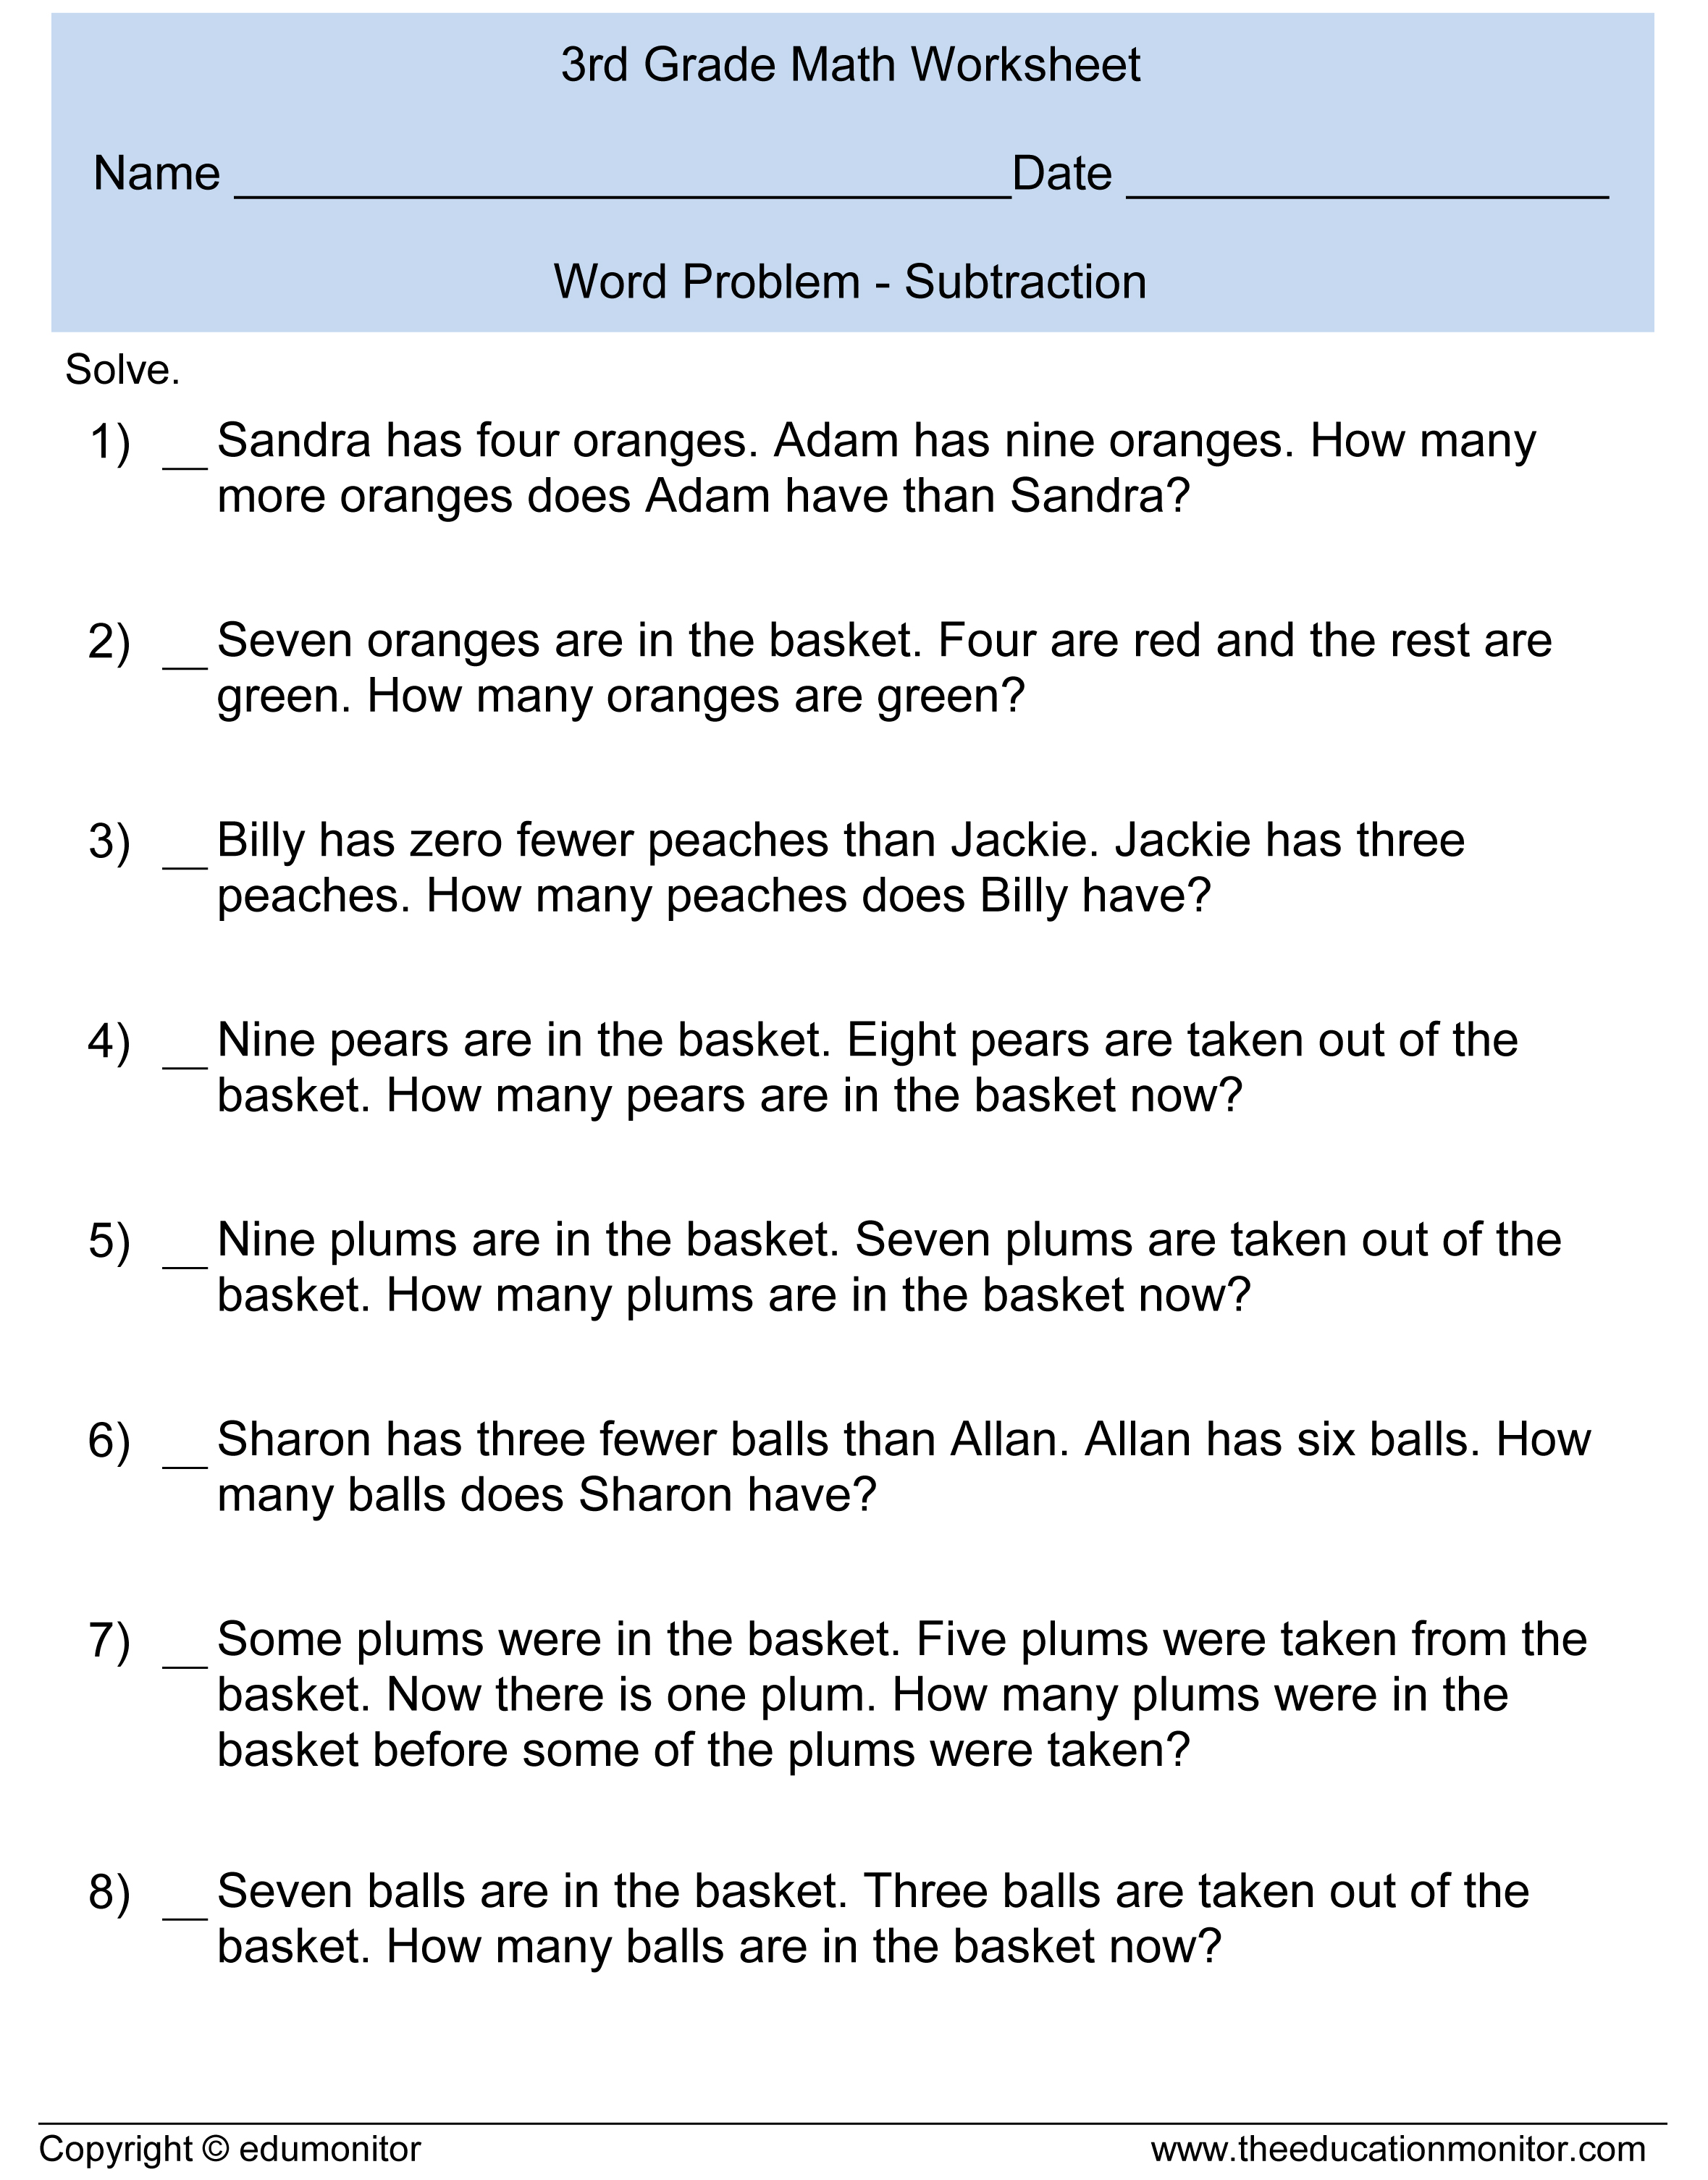 Worksheet Word Problems For Subtraction subtraction word problems for kids document